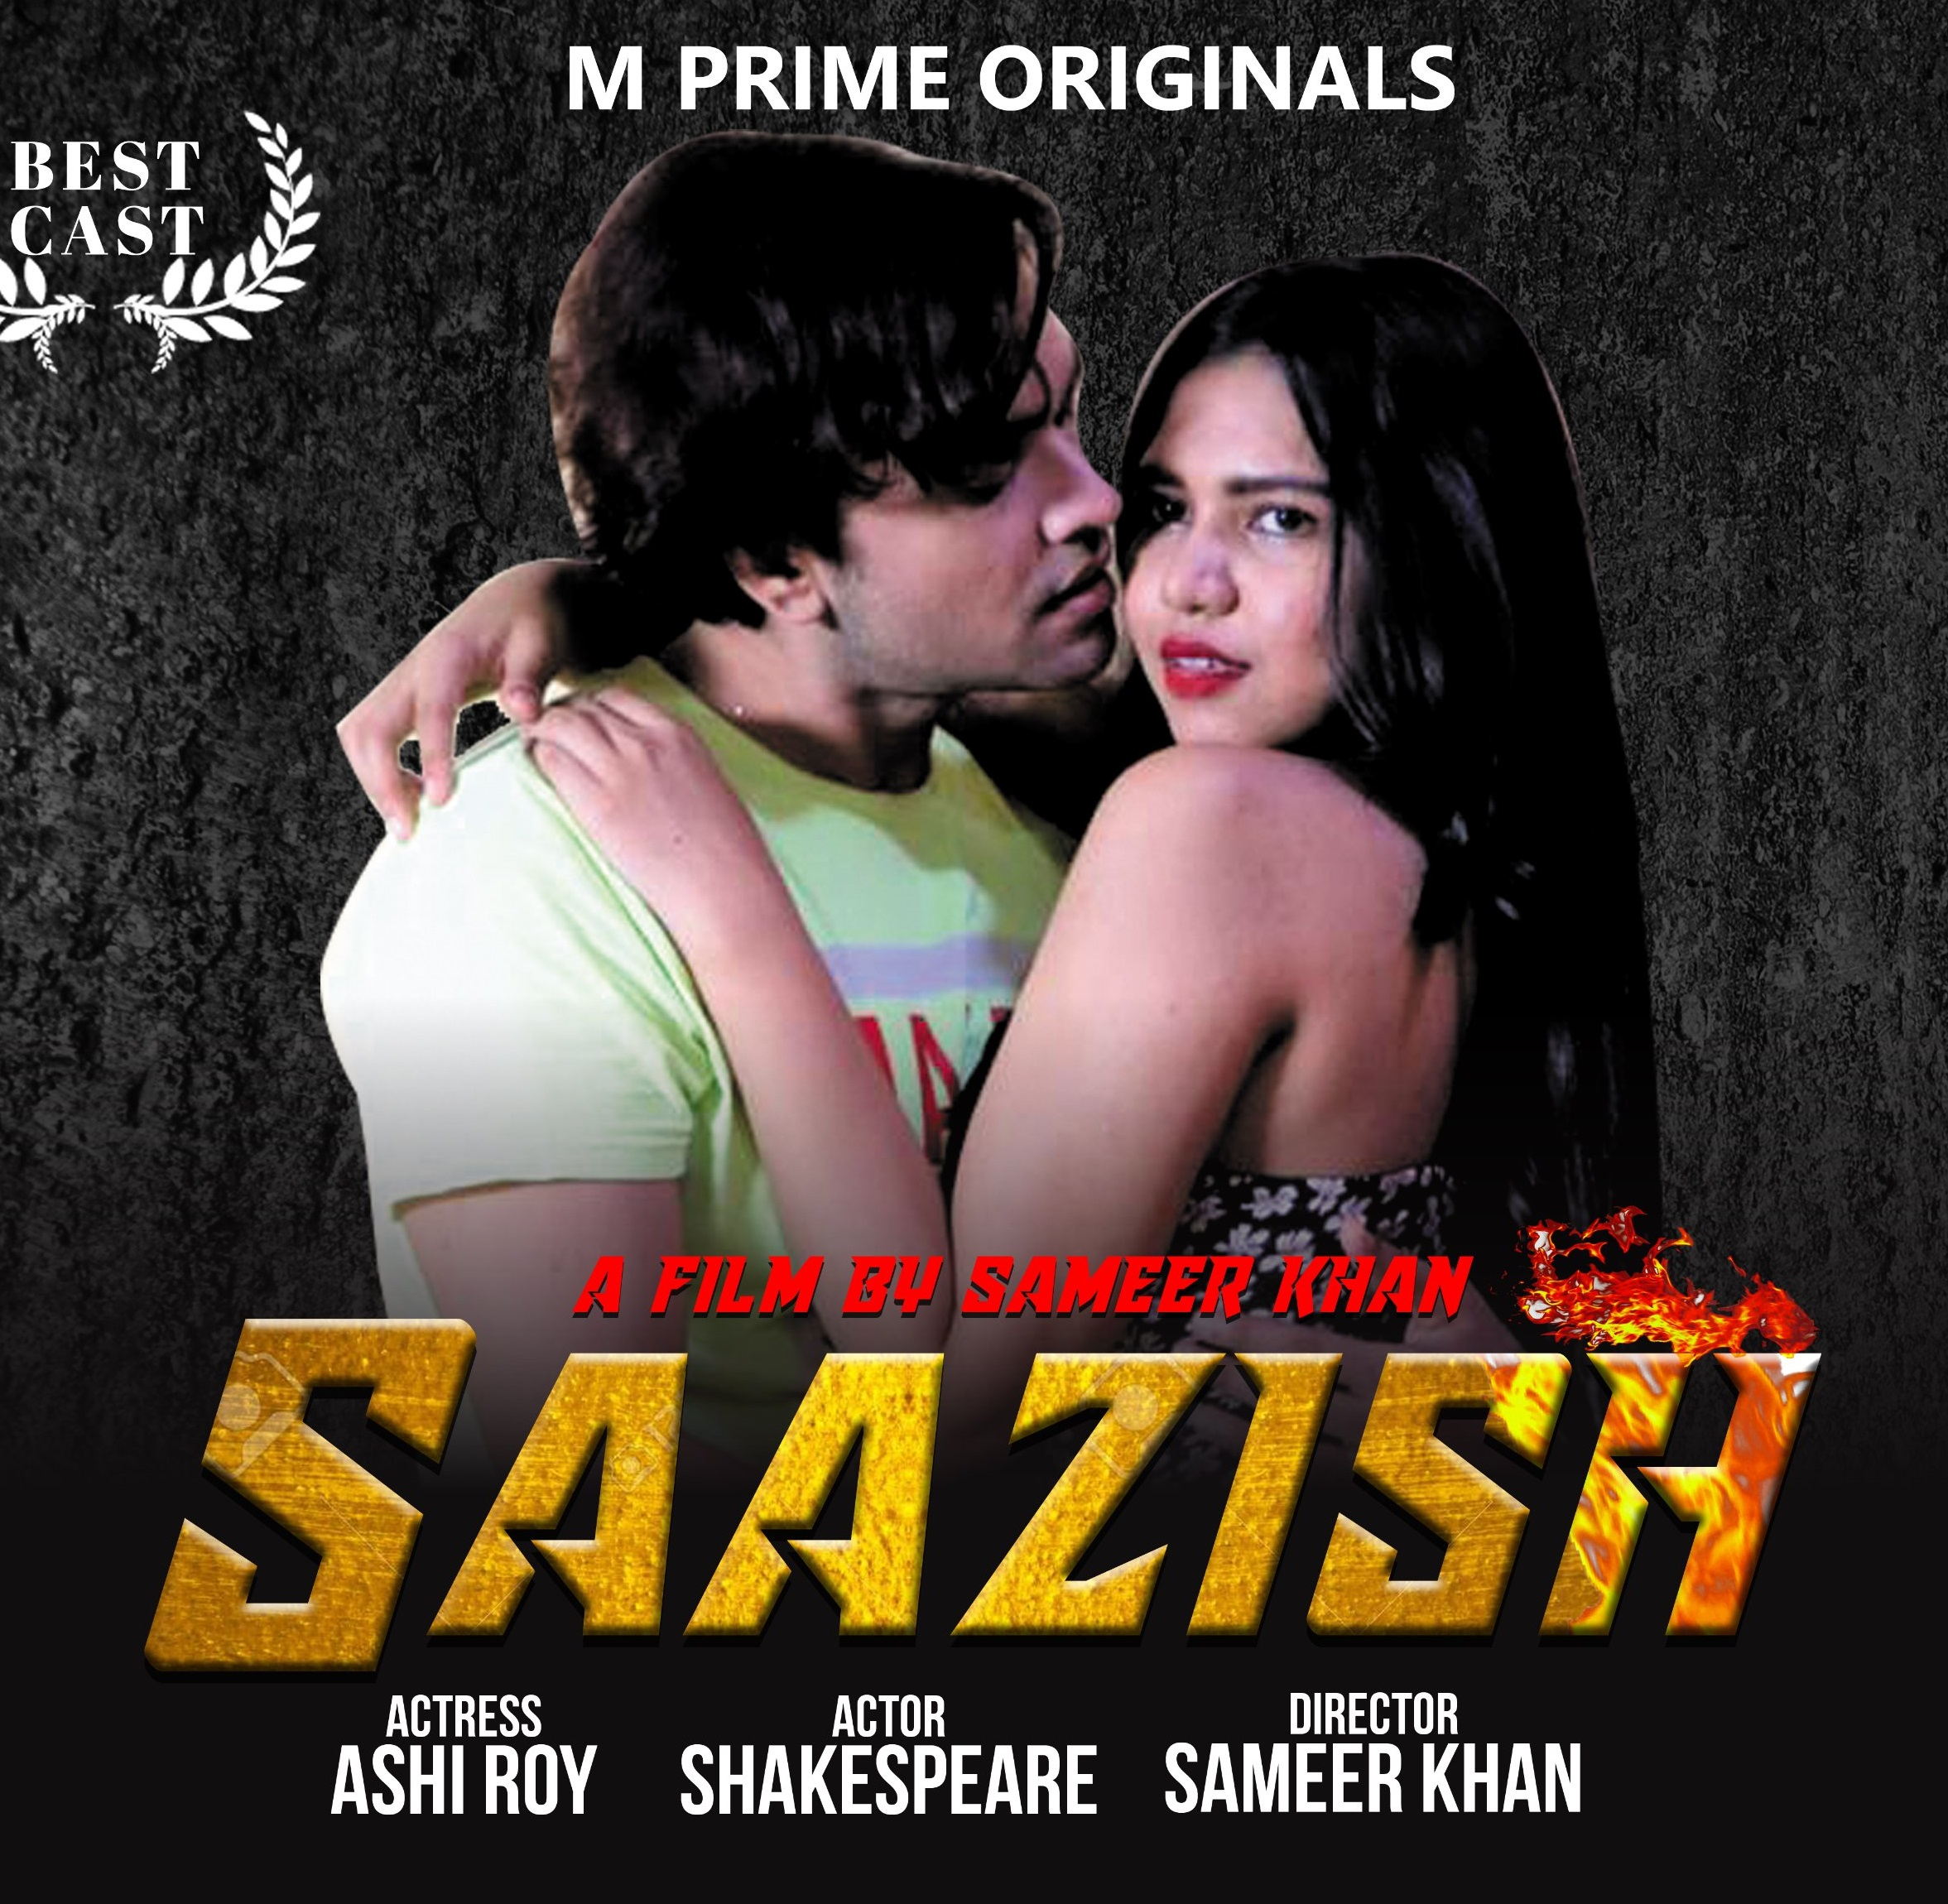 Saazish 2020 MPrime Originals Hindi Short Film 720p HDRip 150MB x264 AAC